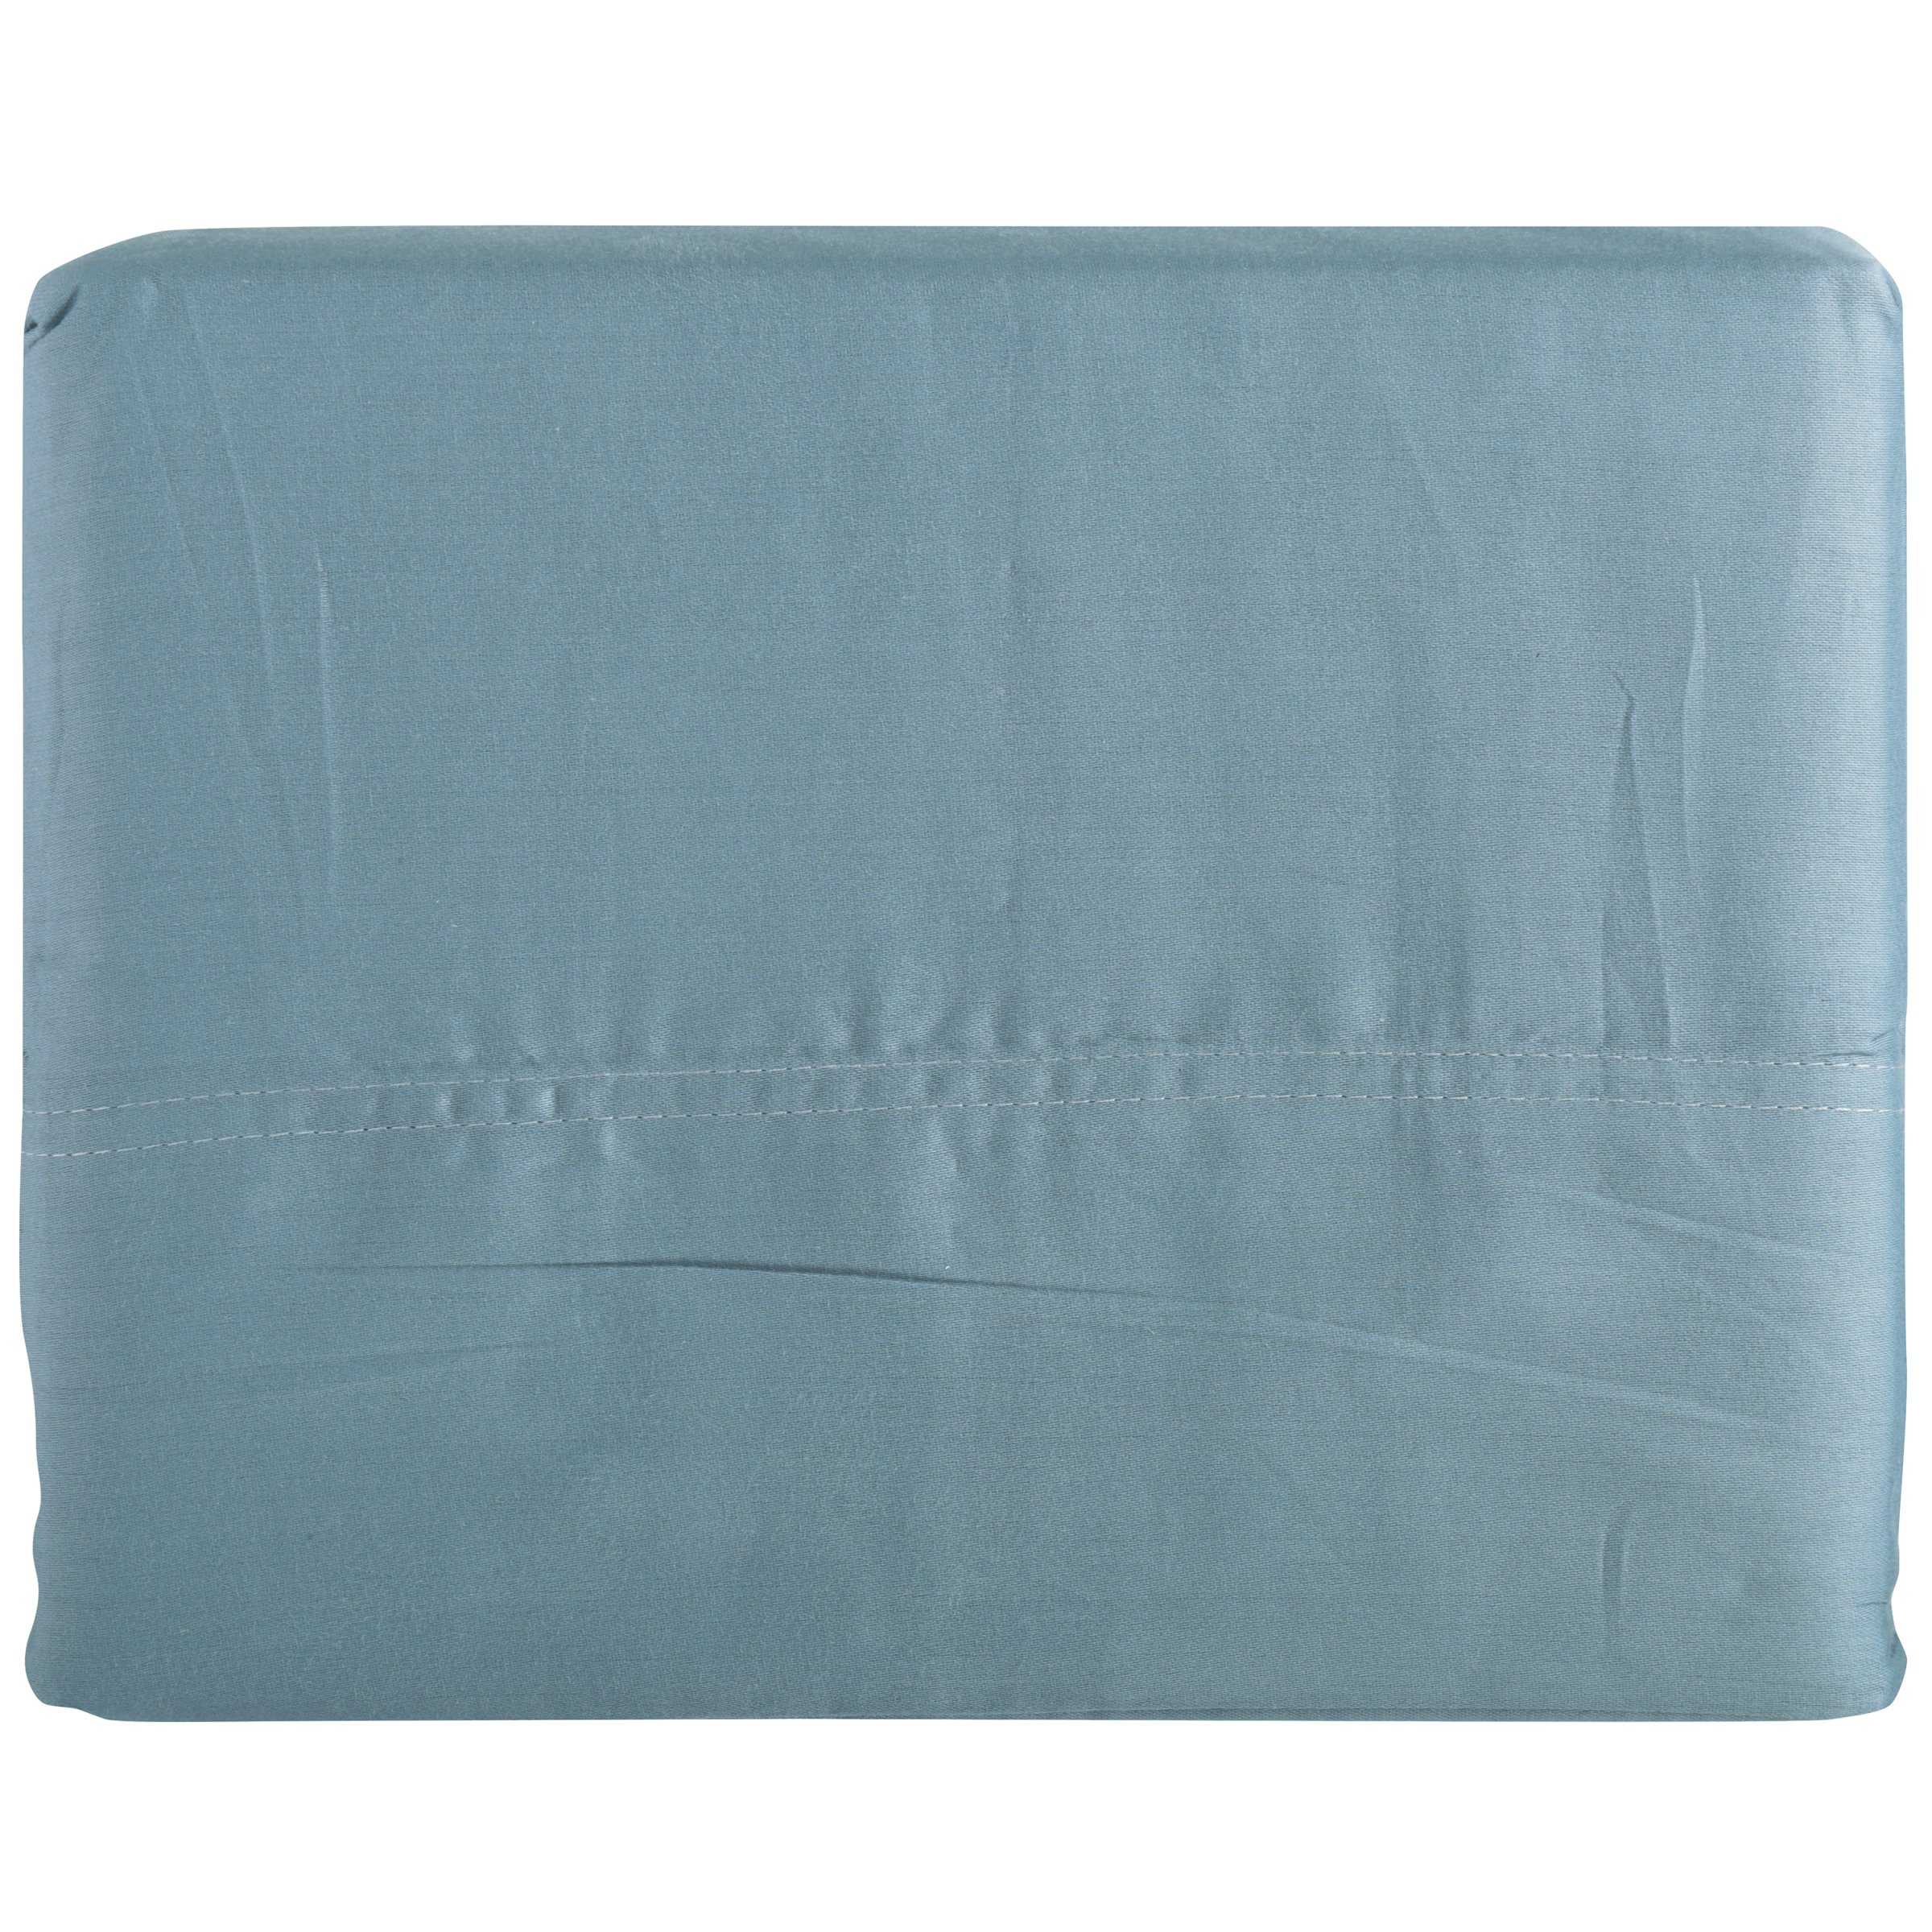 Royale Linens® Ashley Blue 300 Thread Count Sateen Twin Sheet Set 3 pc Pack